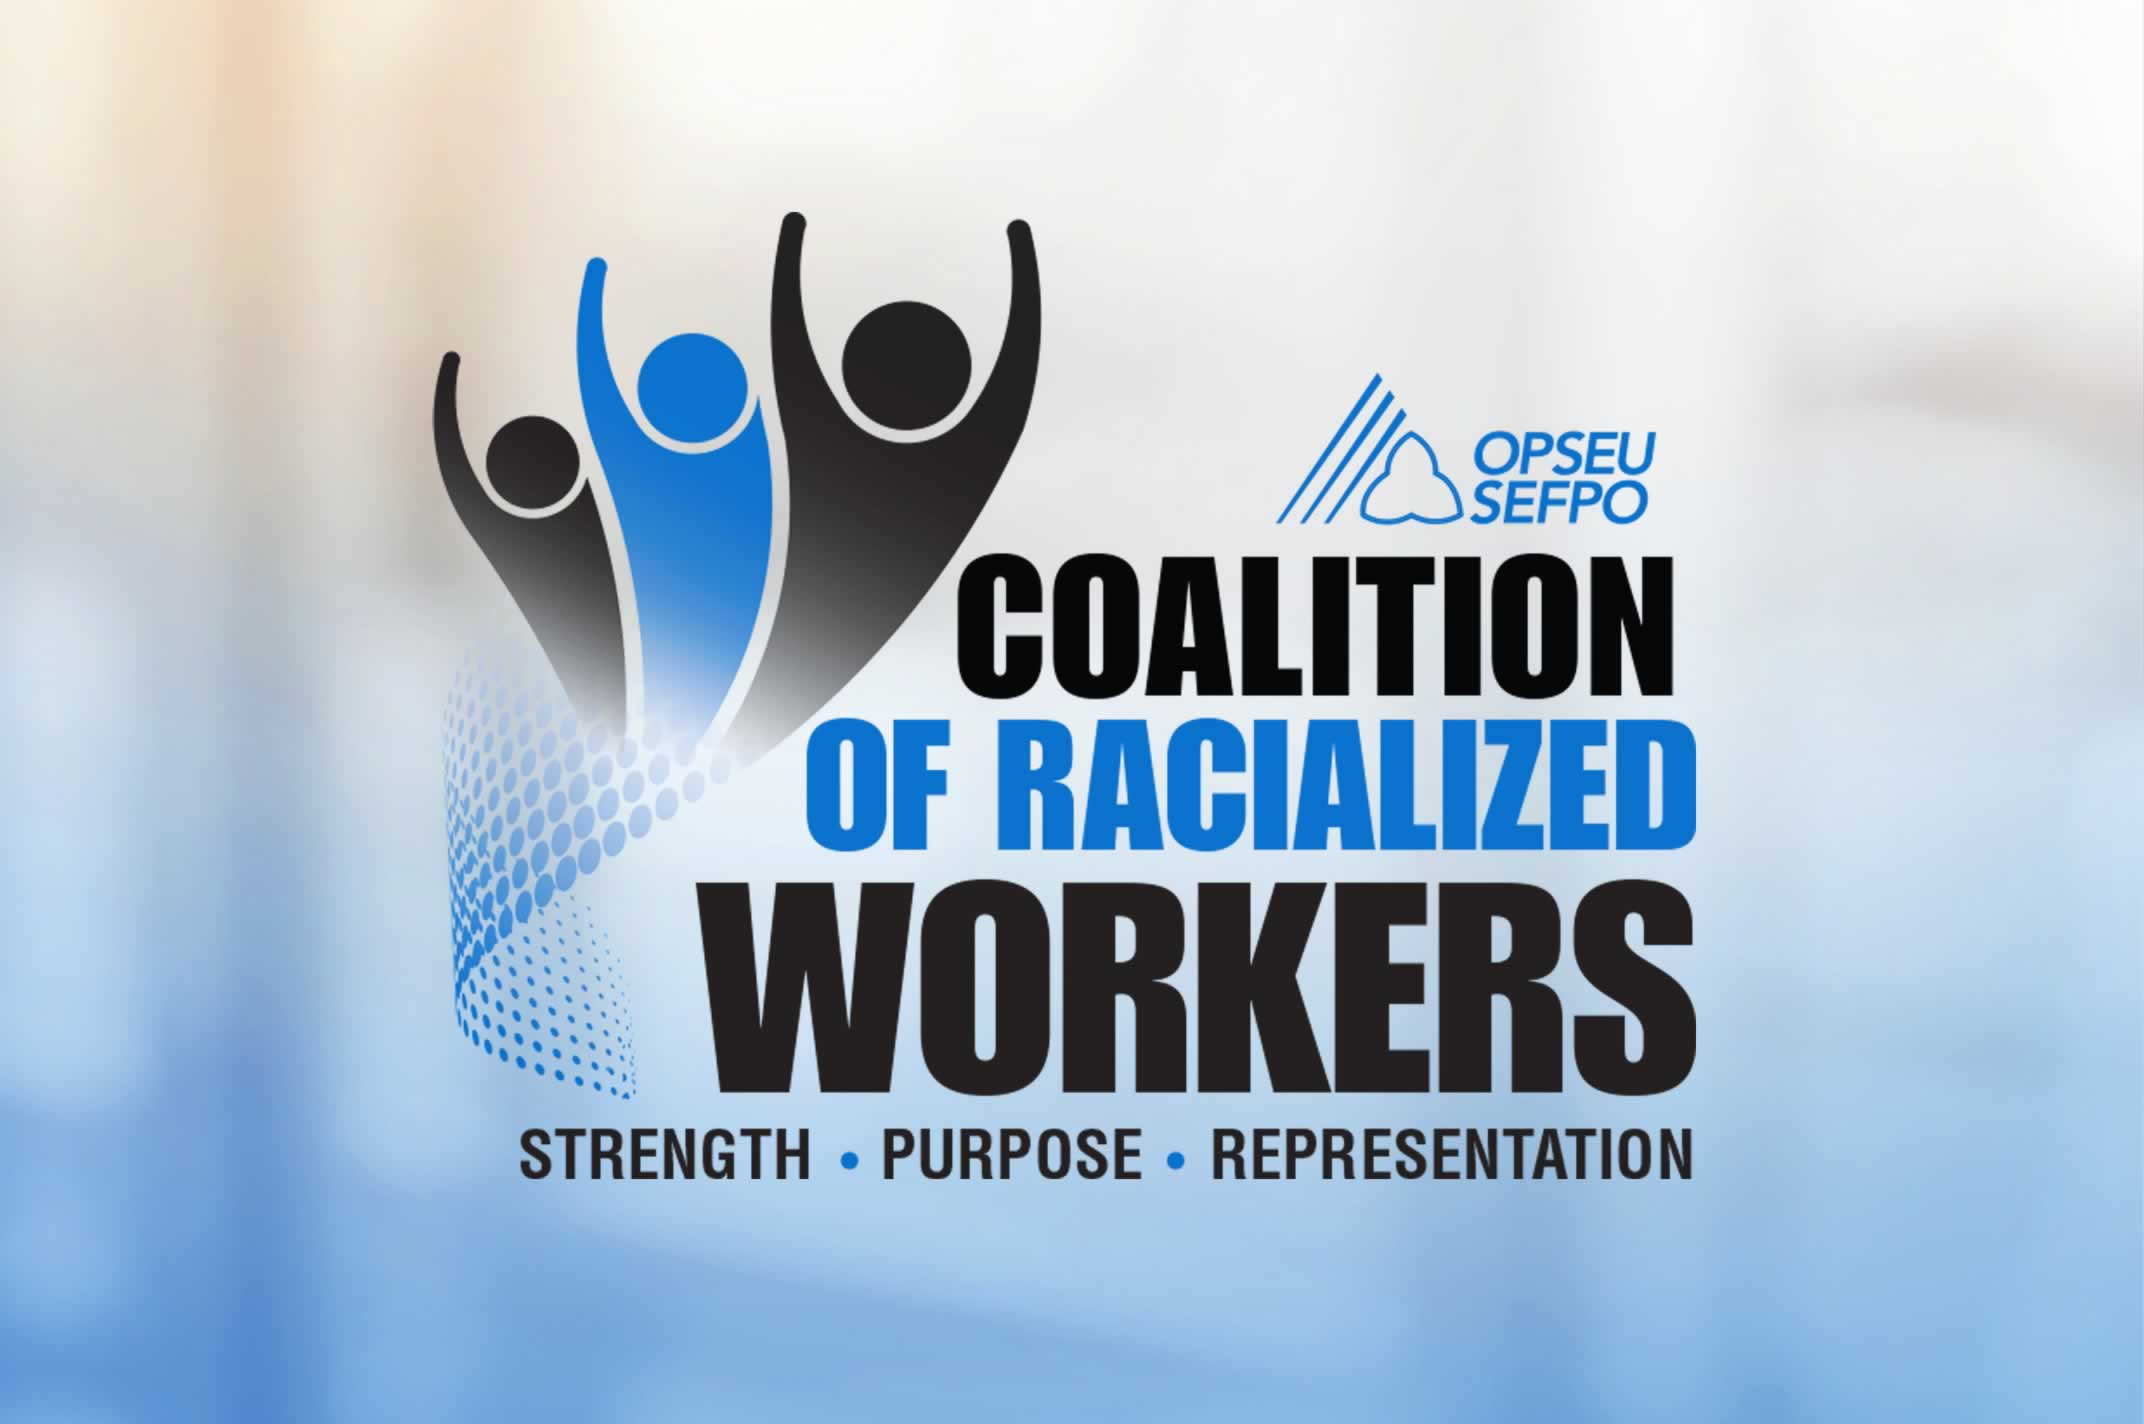 Coalition of Racialized workers: strength, purpose, representation